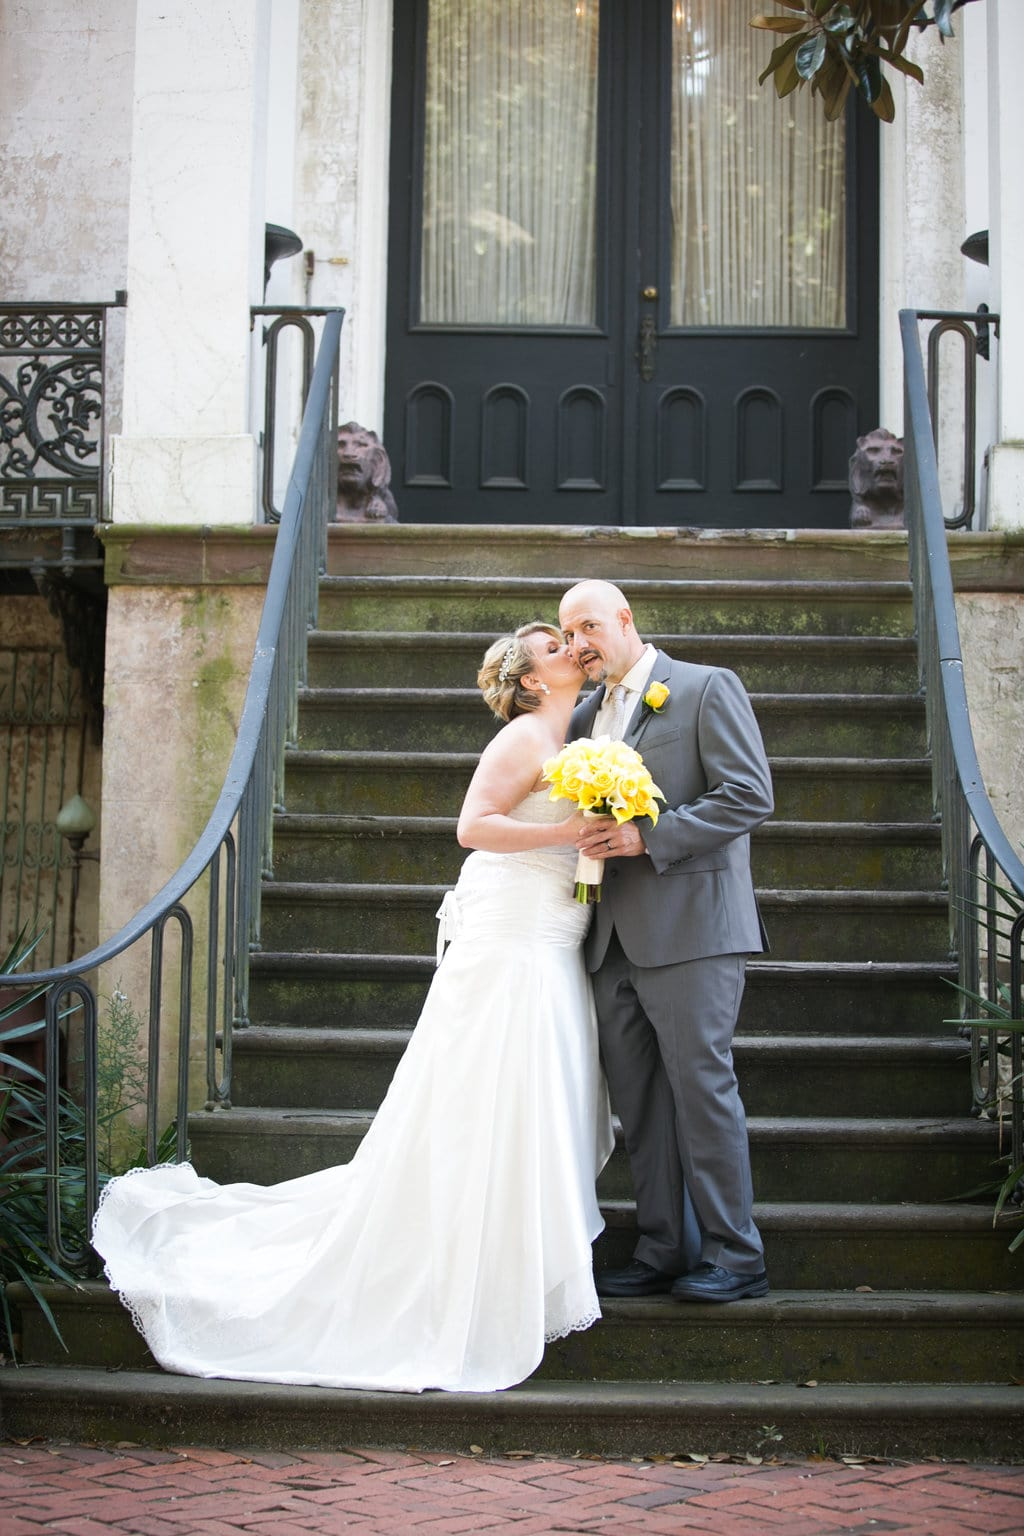 Savannah, GA wedding photography